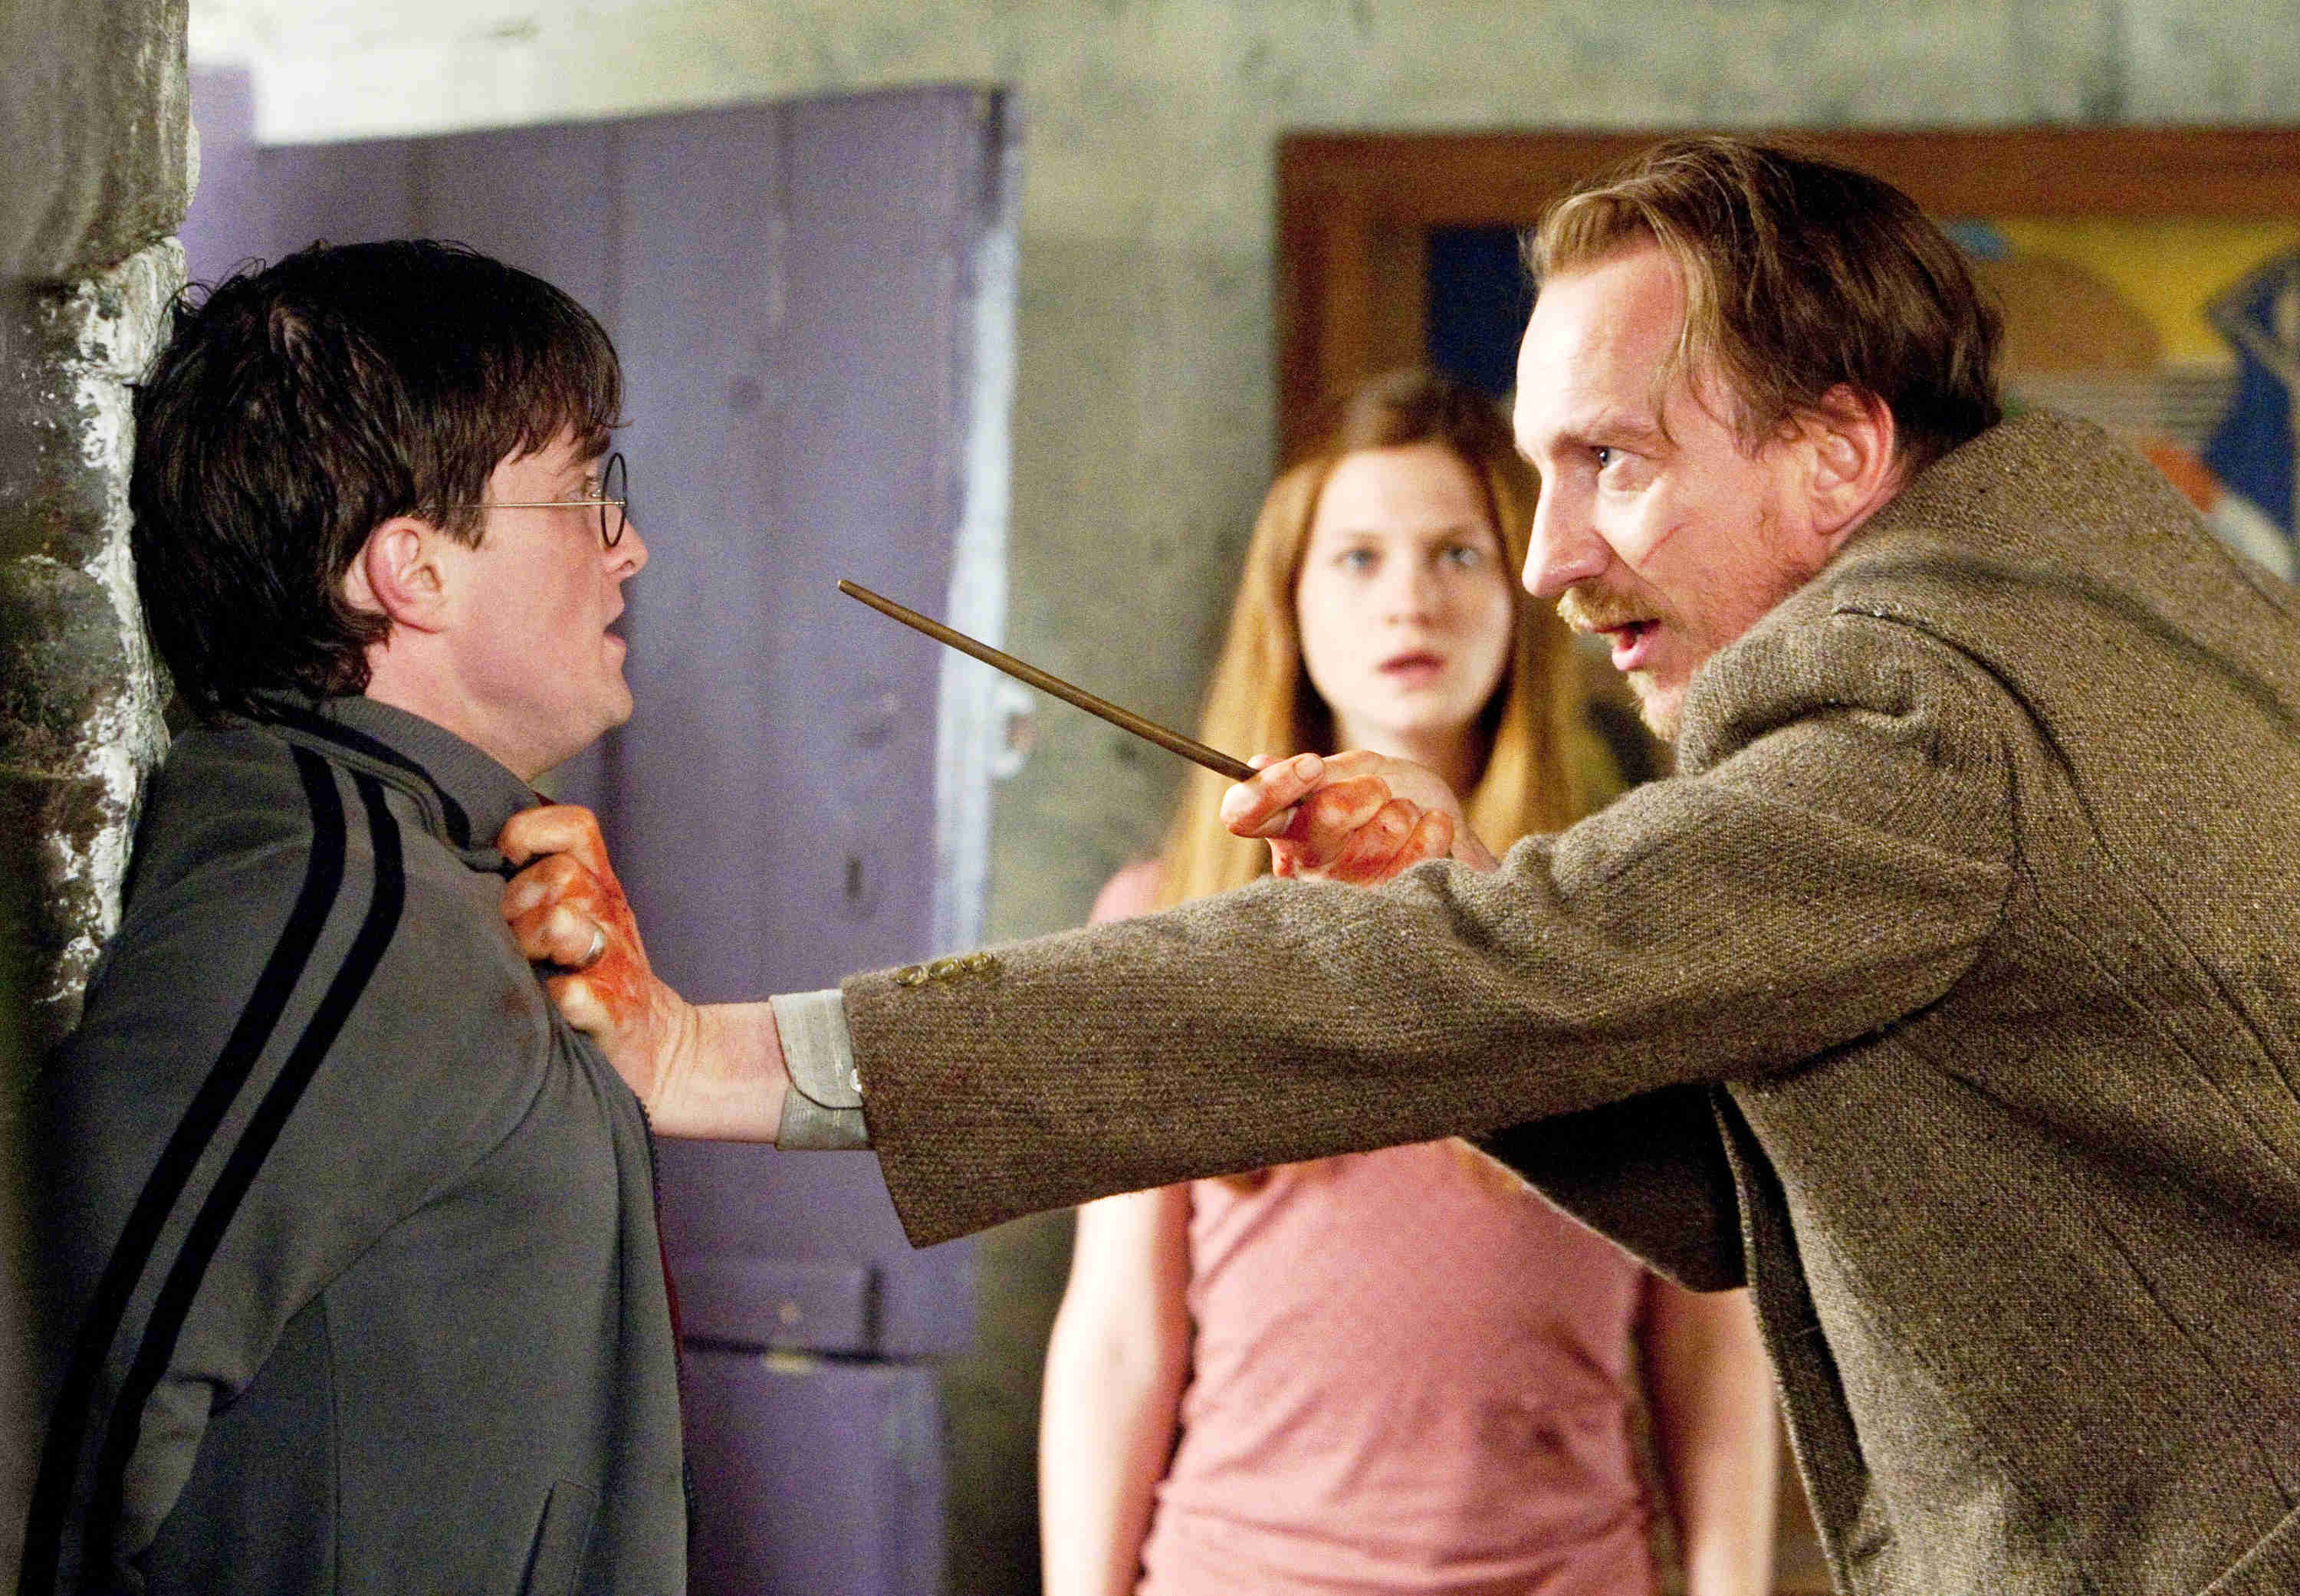 Daniel Radcliffe, David Thewlis, Bonnie Wright